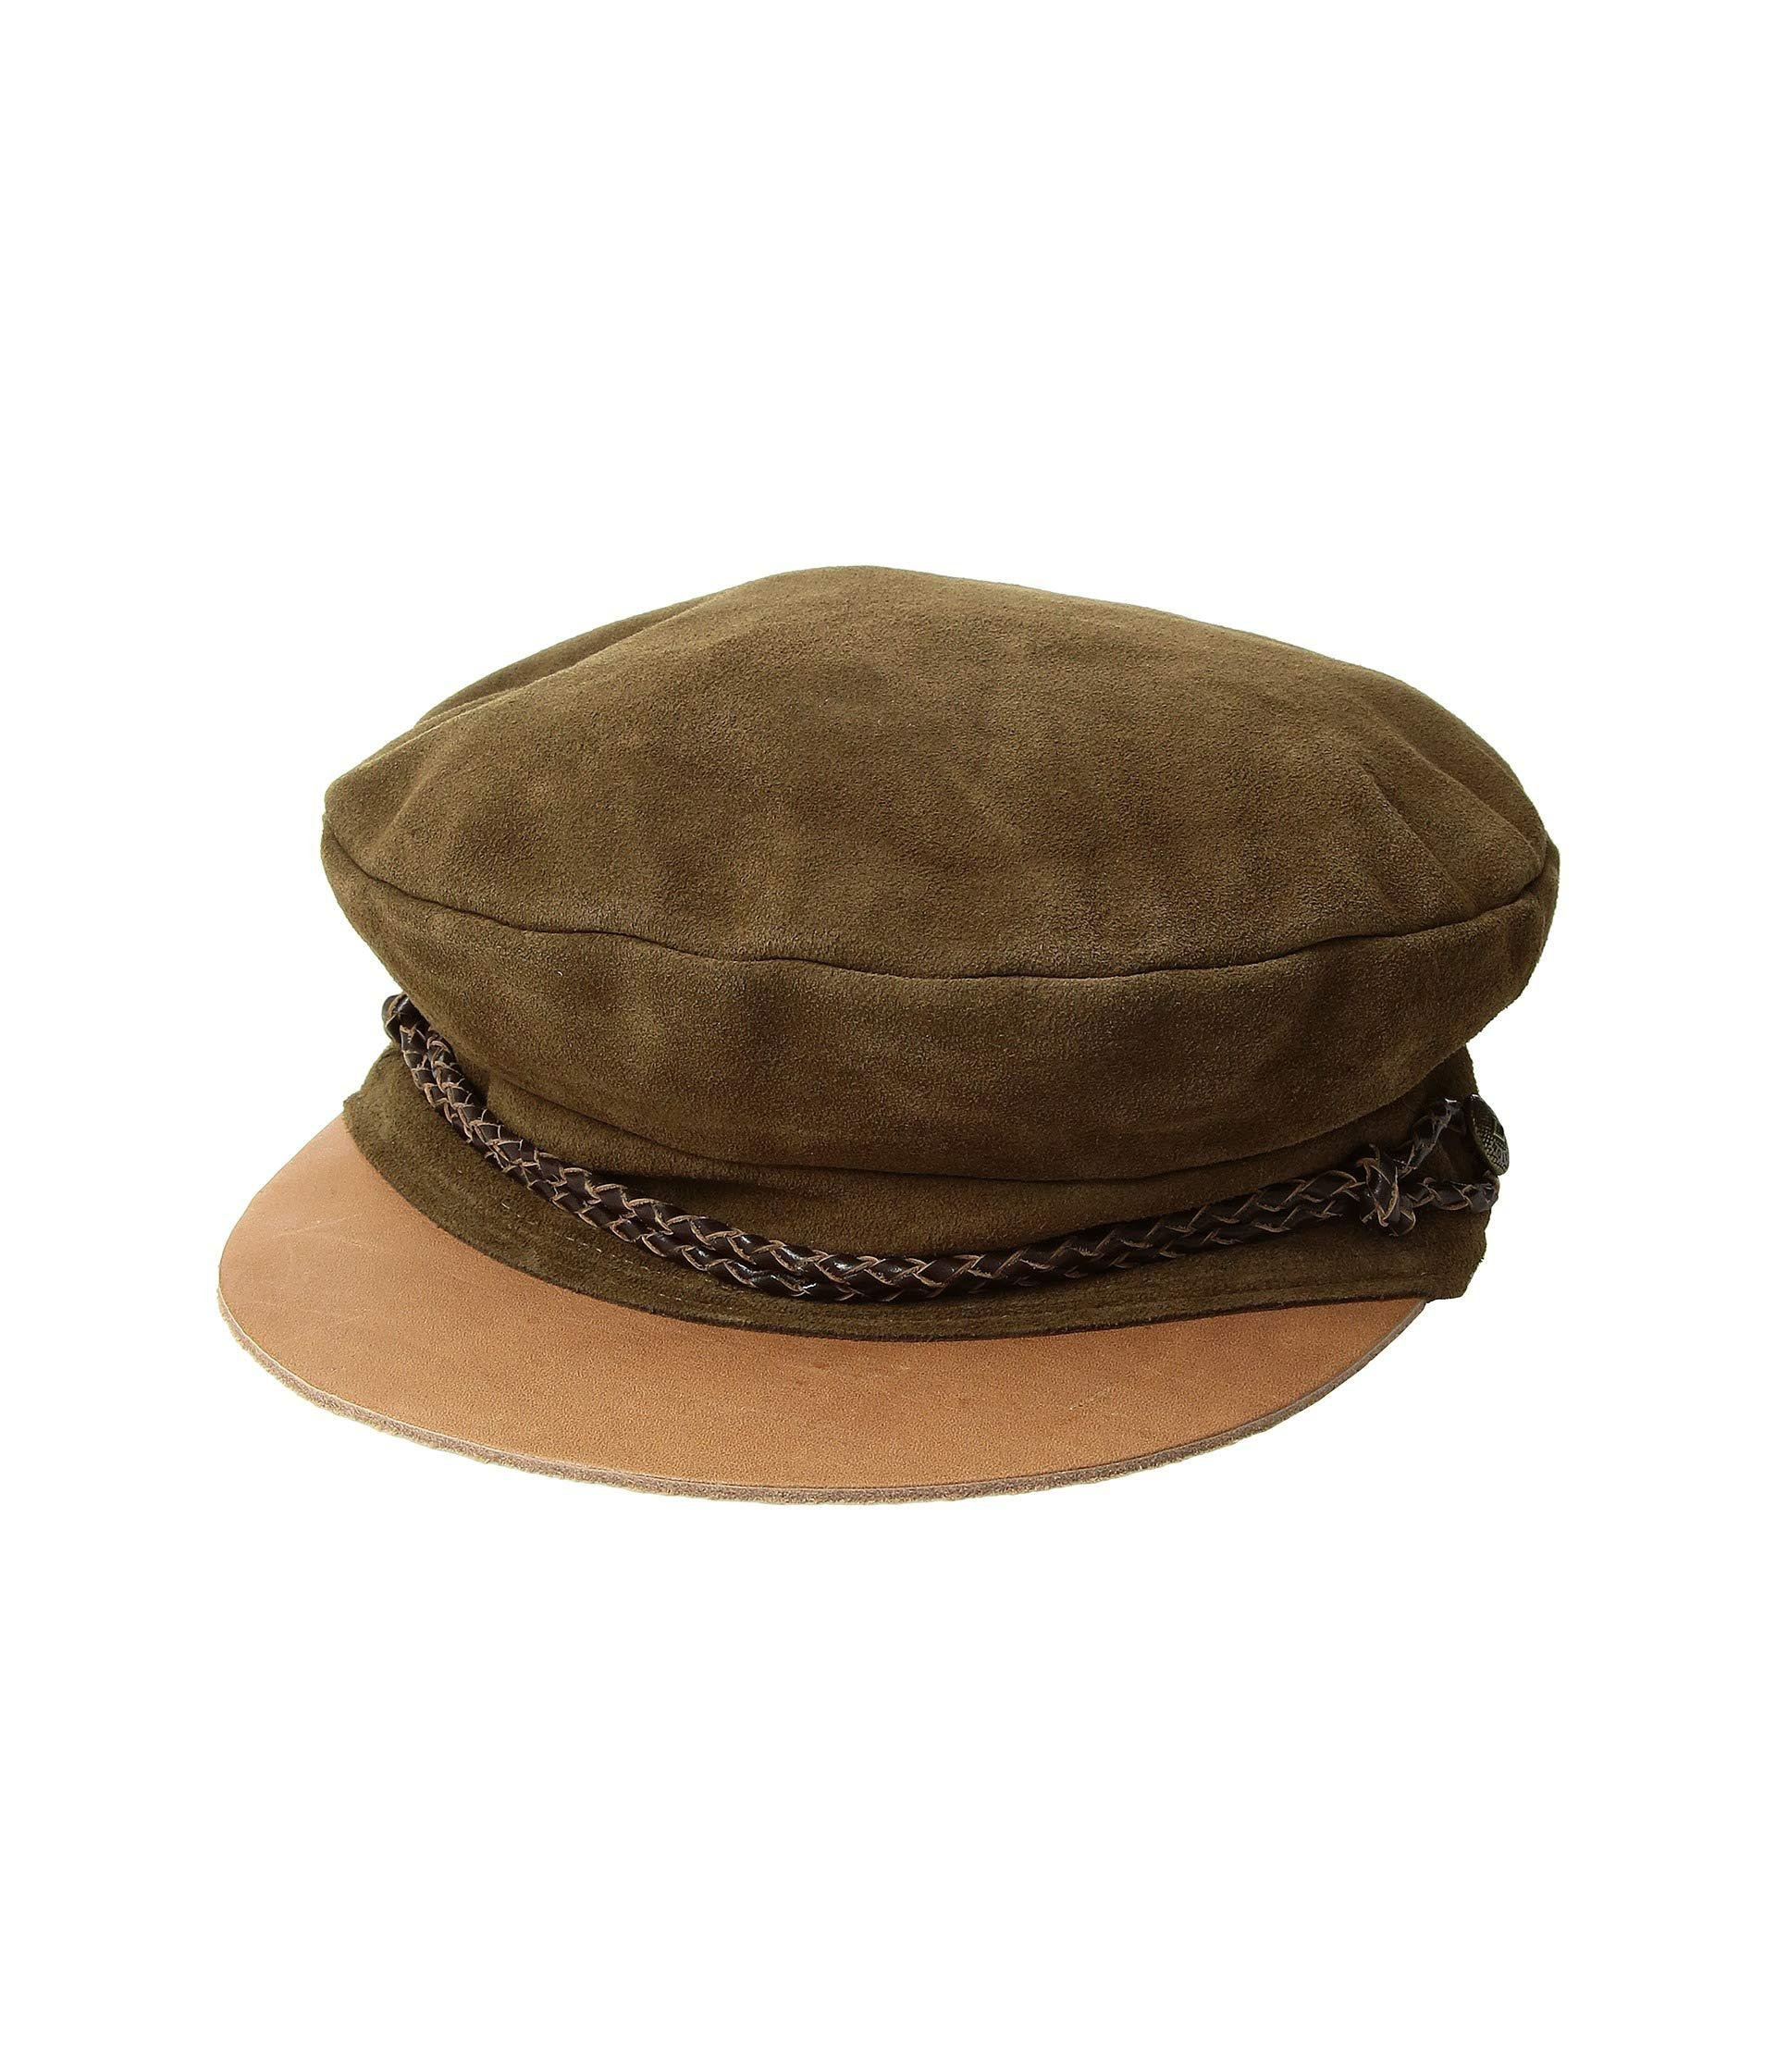 Lyst - Brixton Kayla Cap (brown brown) Traditional Hats in Brown 0a20445eb83c